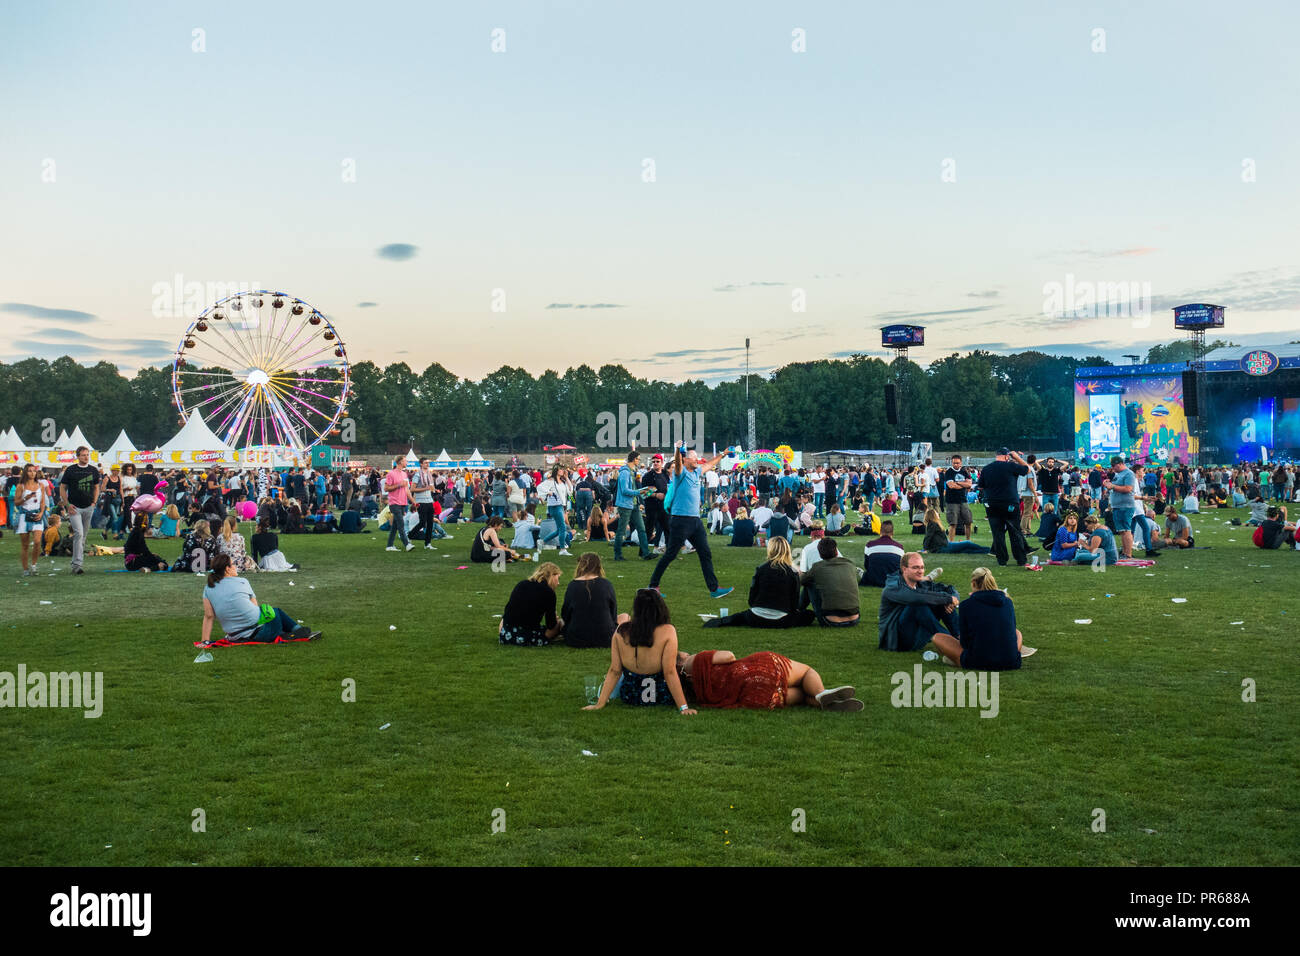 Berlin Lollapalooza music festival 2018 - Stock Image